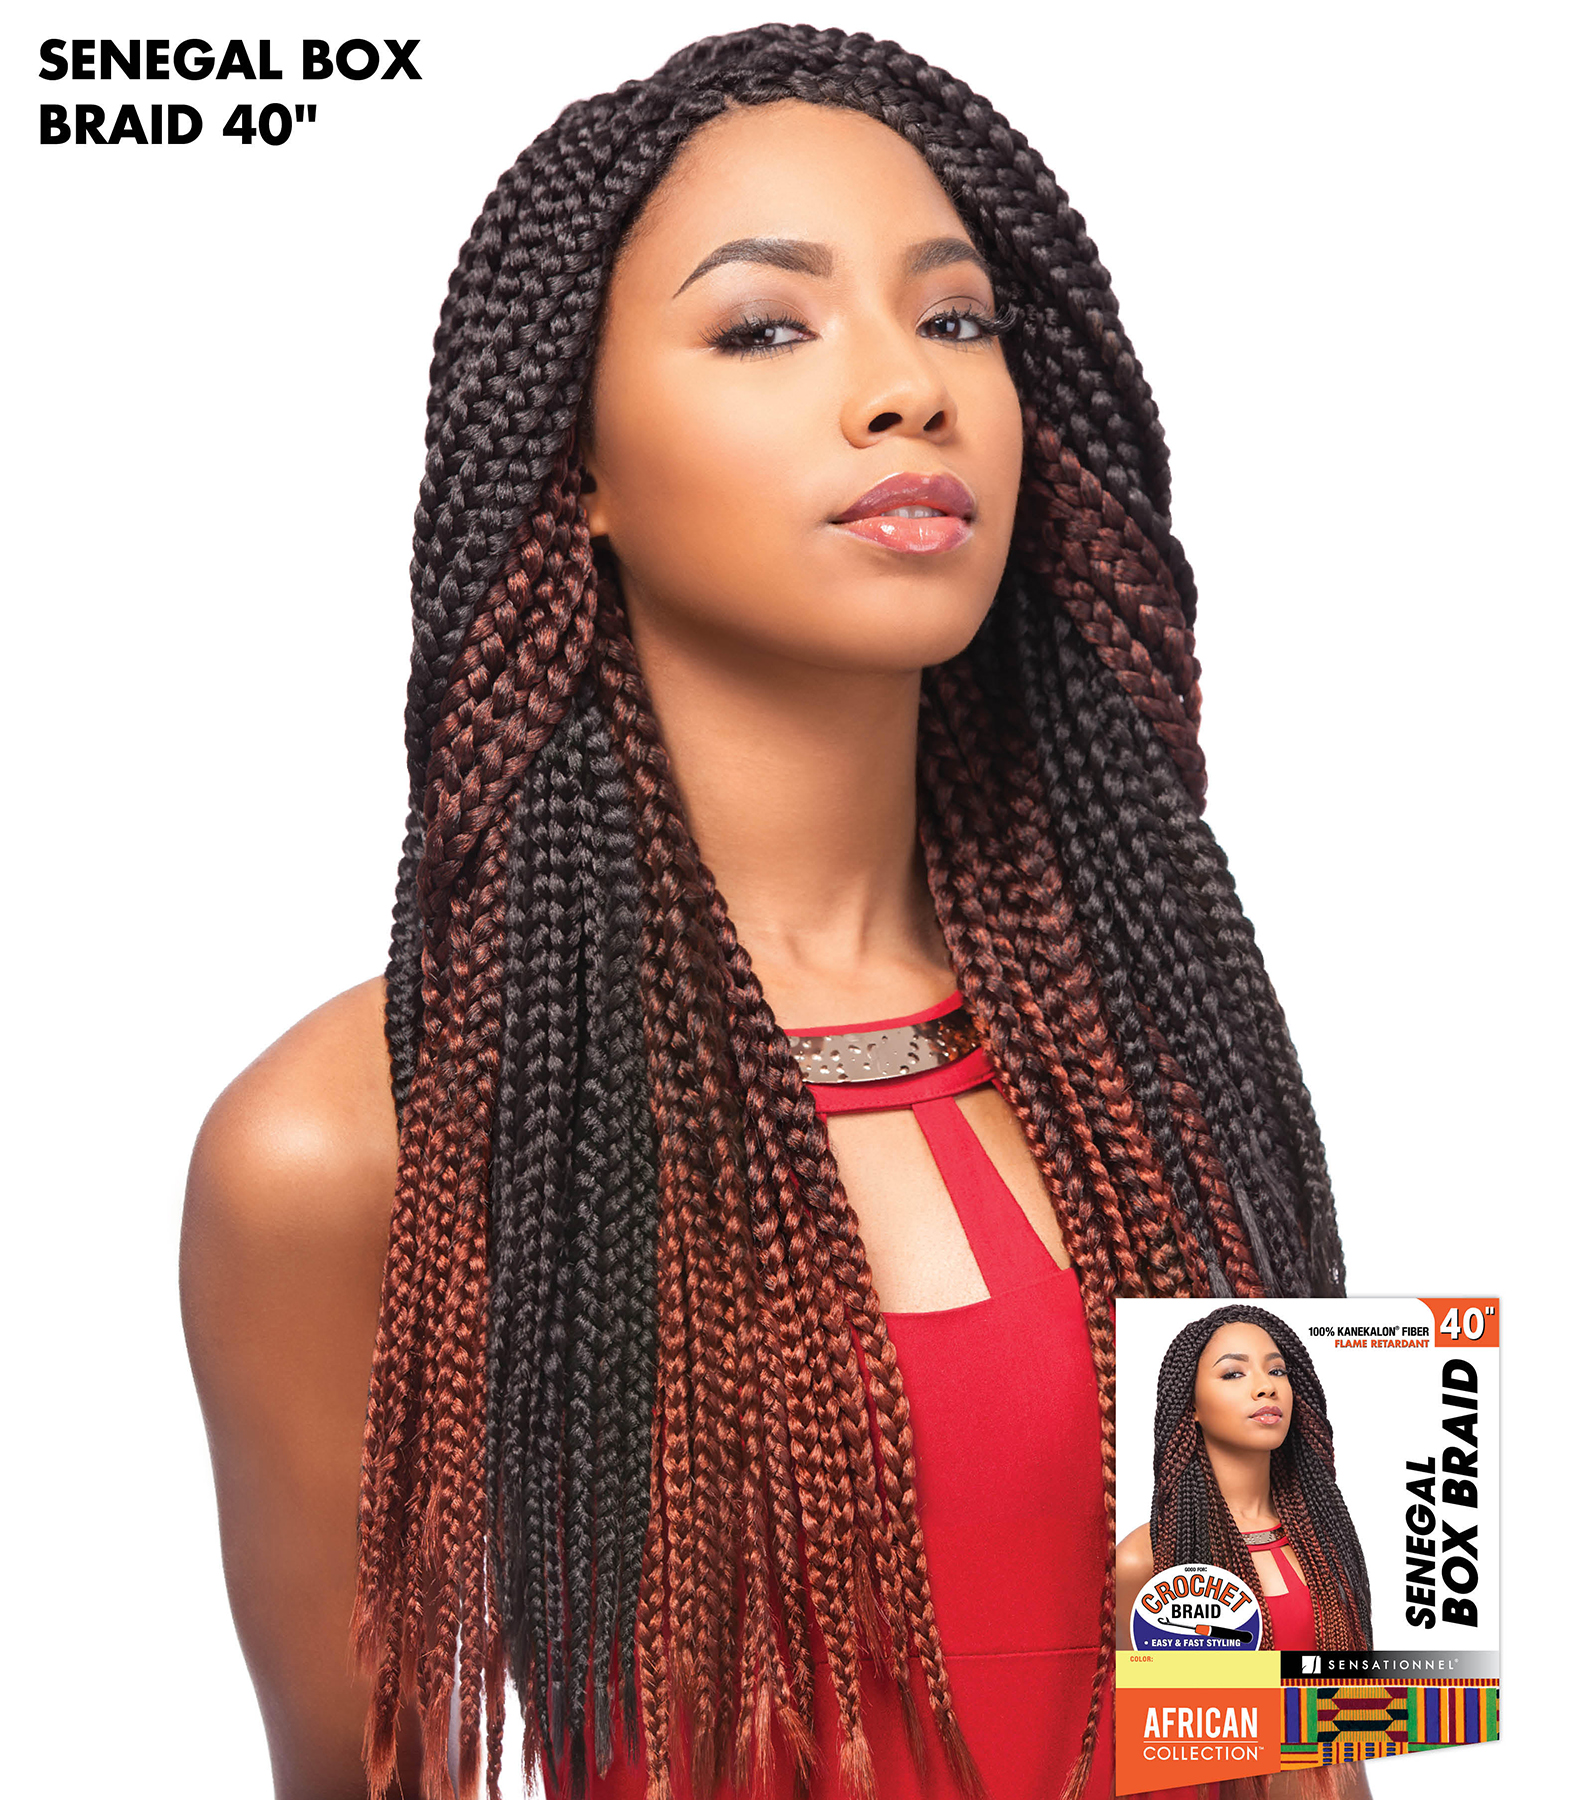 Senegal Box Braid 40 Sensationnel Crochet Braiding Hair Extension